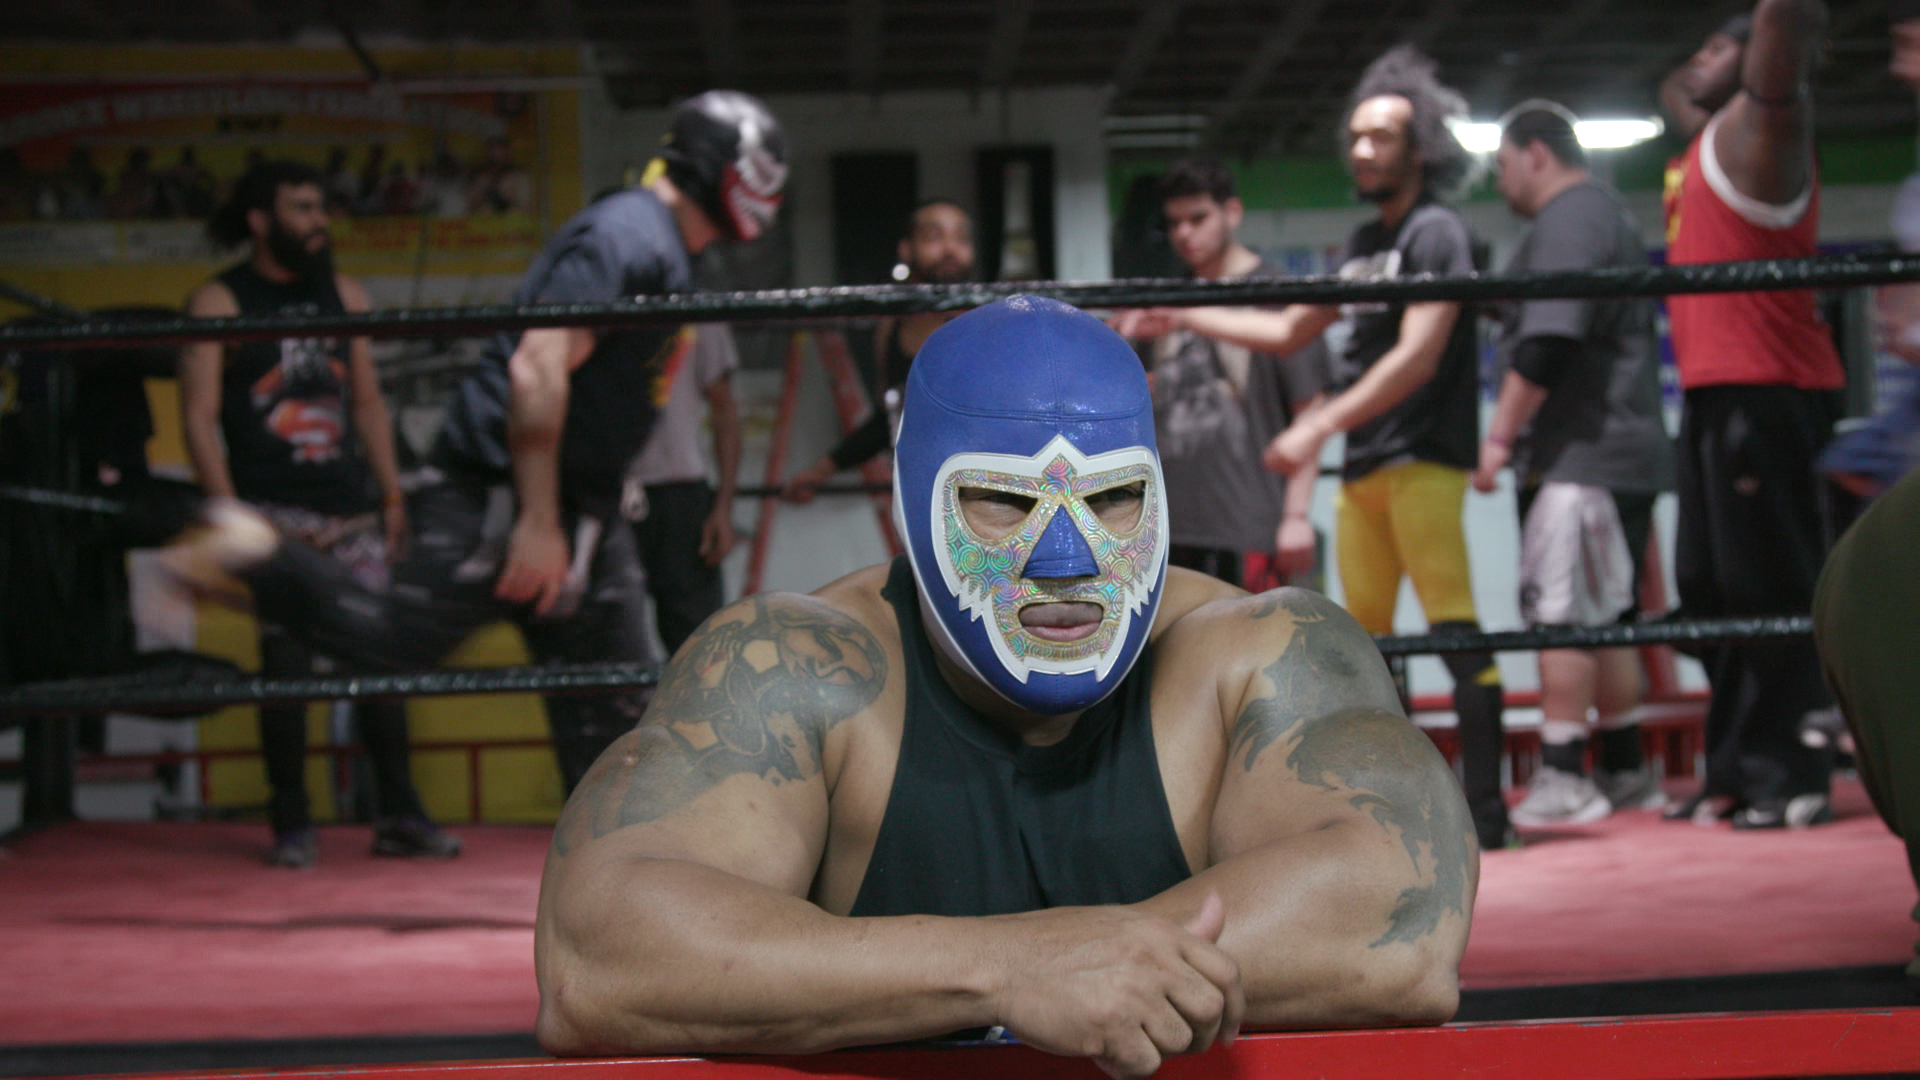 Vidios De Lucha Libre We Hop In The Ring With Lucha Libre Wrestlers